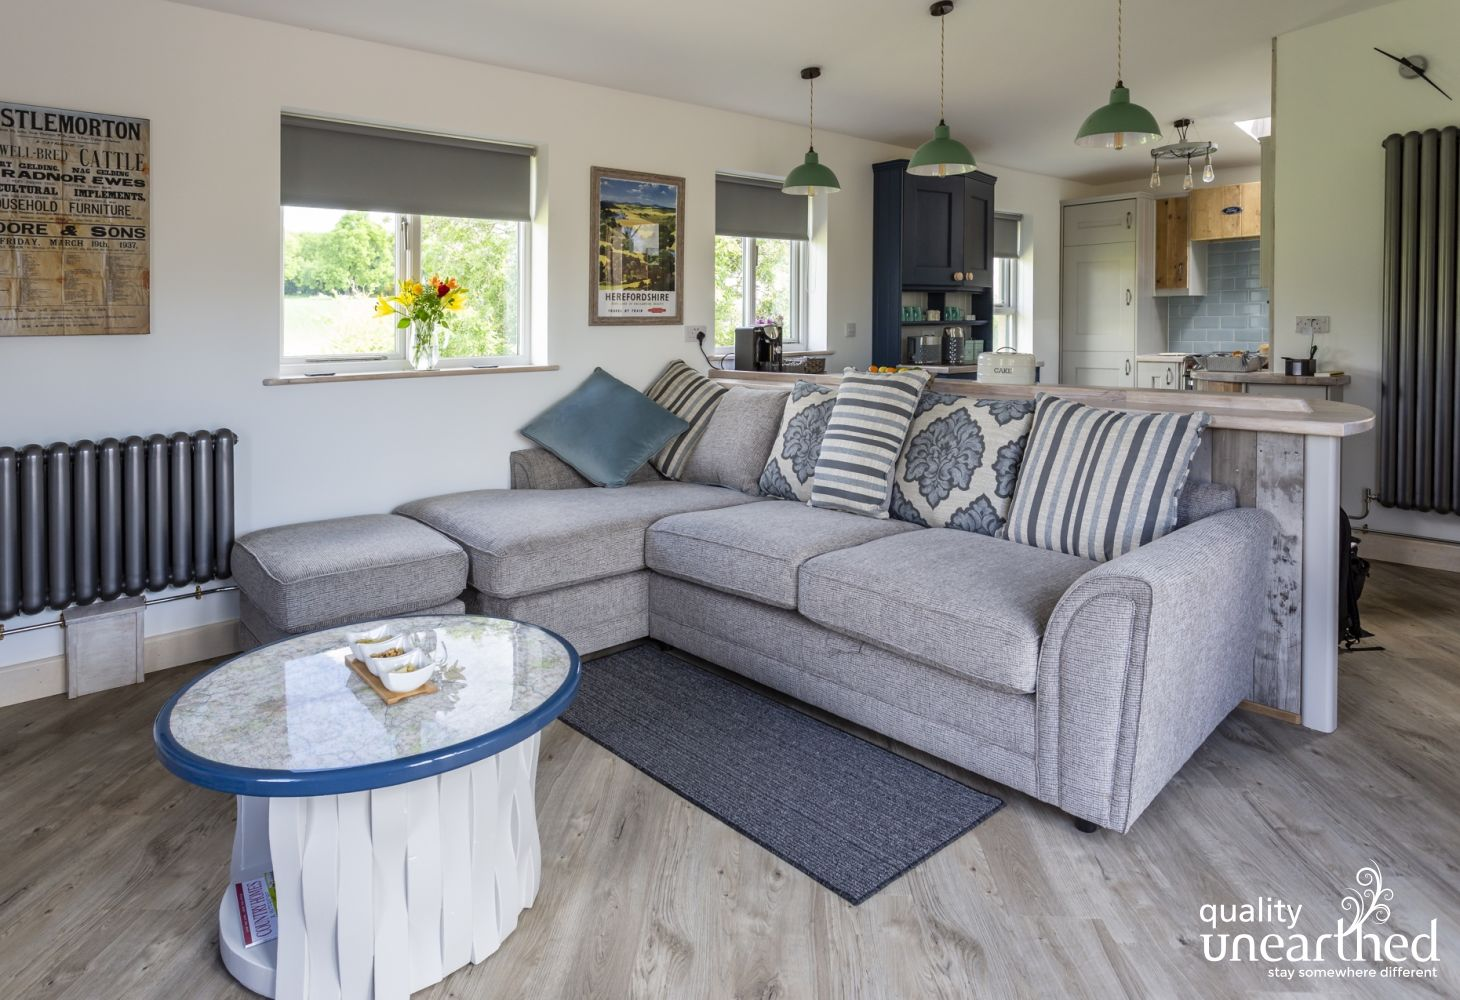 There�s a stylish palette of natural colours in the open plan living/kitchen with windows from the luxury lodge overlooking the Malverns countryside